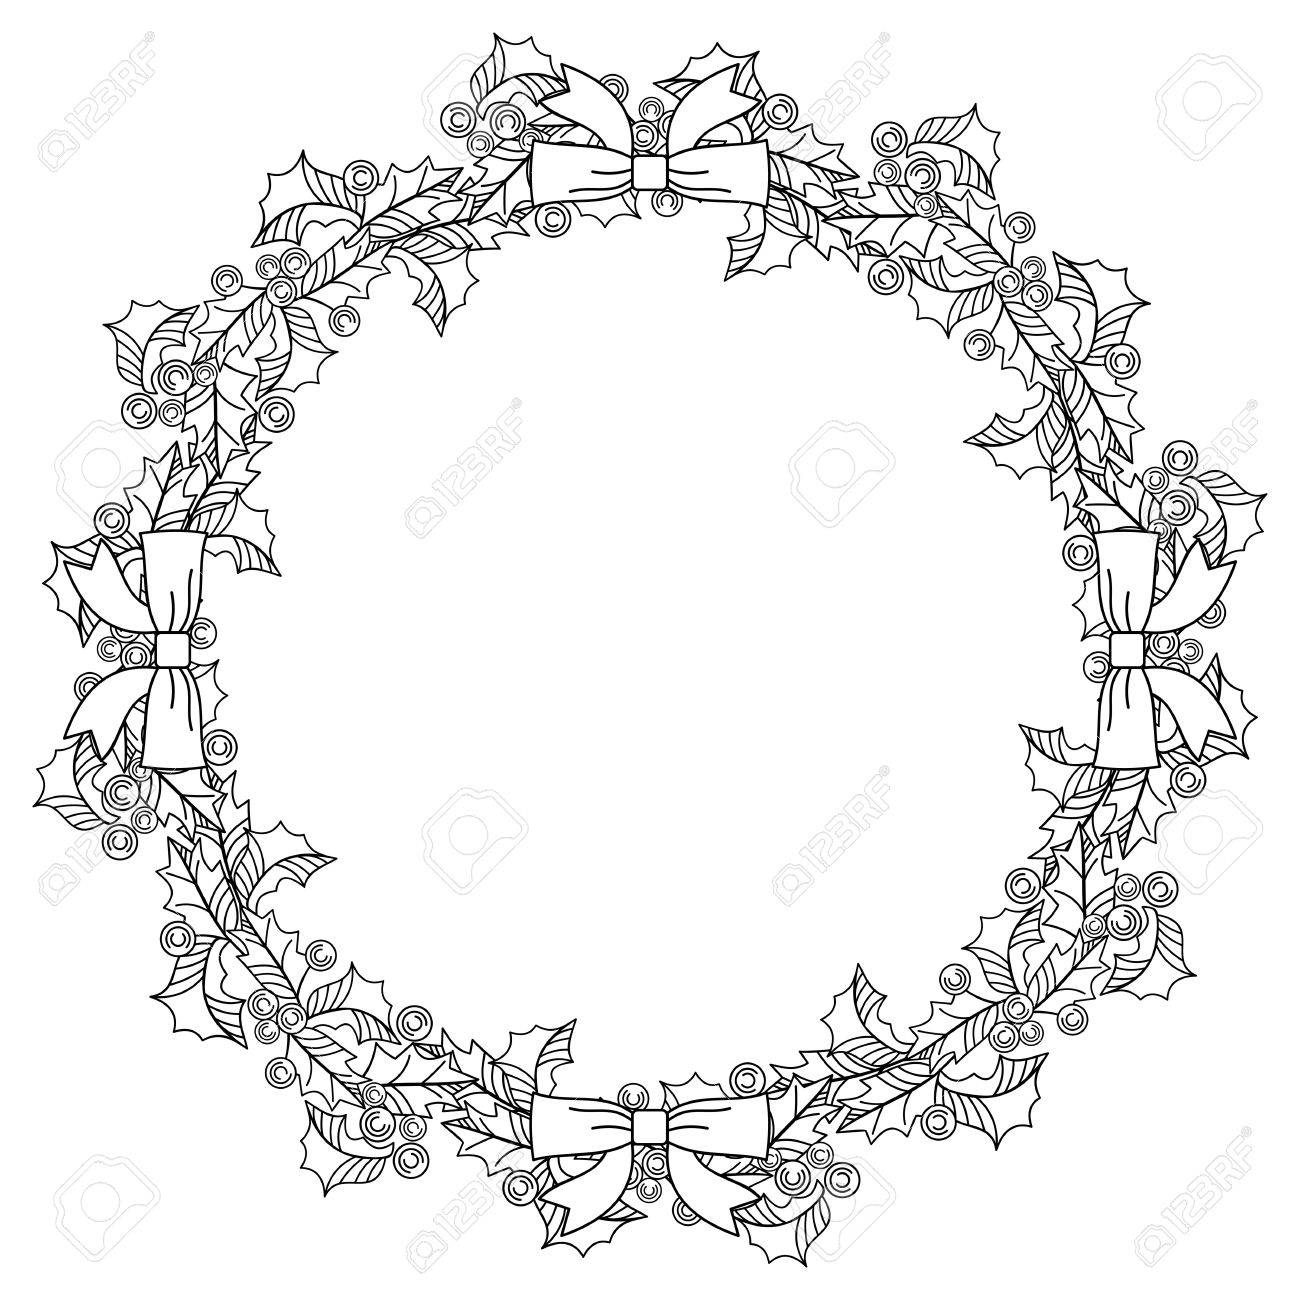 Christmas Garland Drawing.Christmas Garland Outline Holly Berry Contour Image Of Christmas